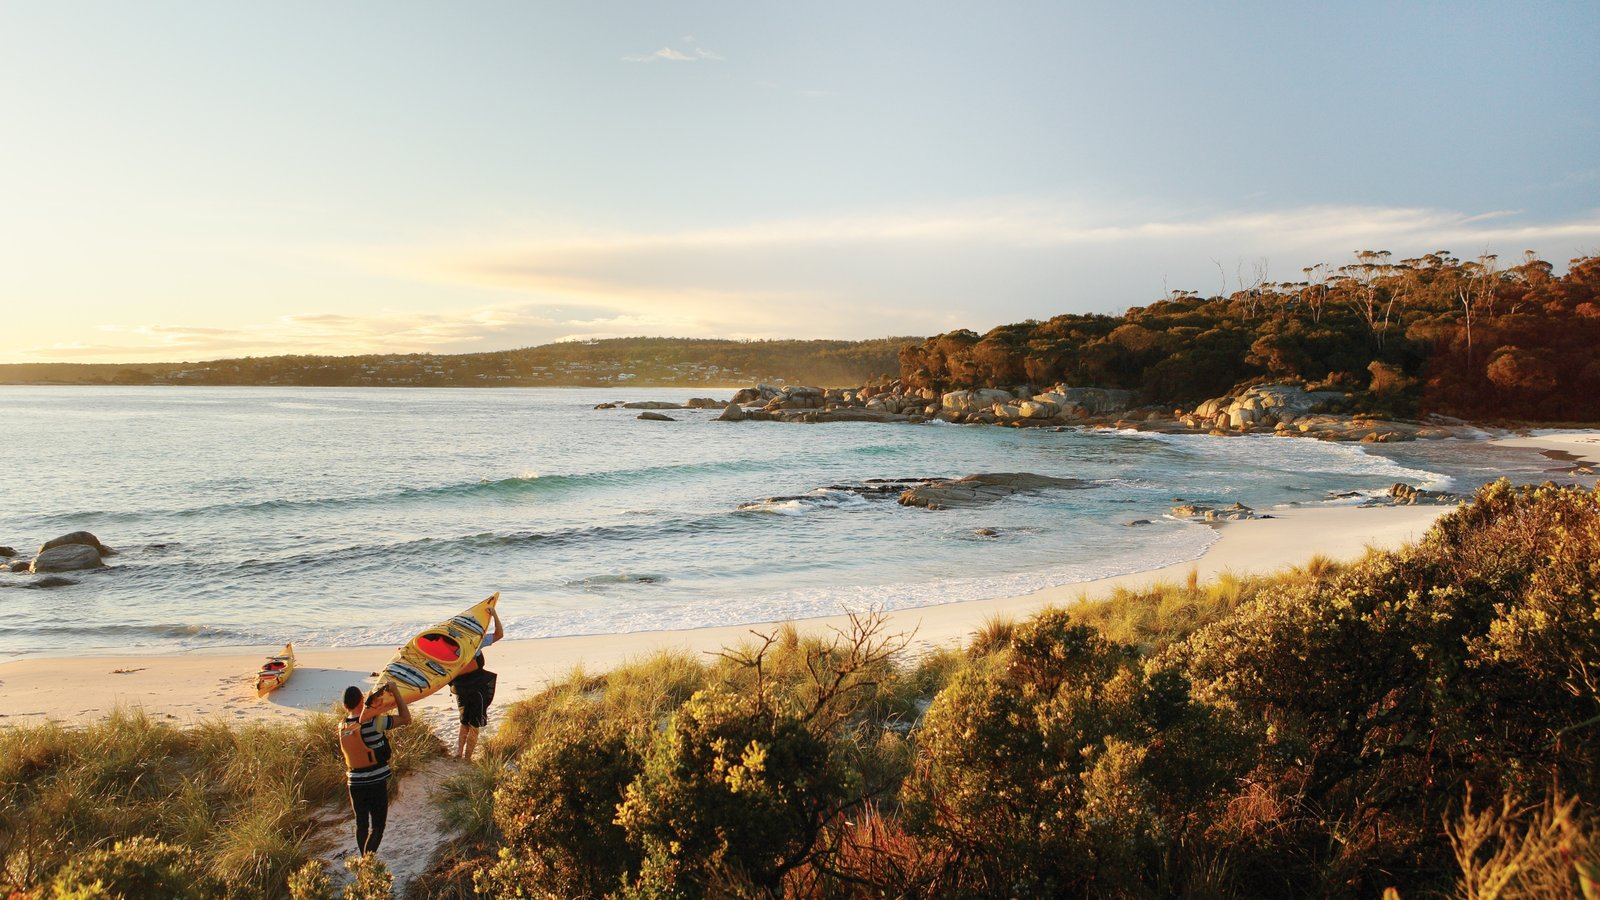 Binalong Bay which includes general coastal views, a sunset and a beach